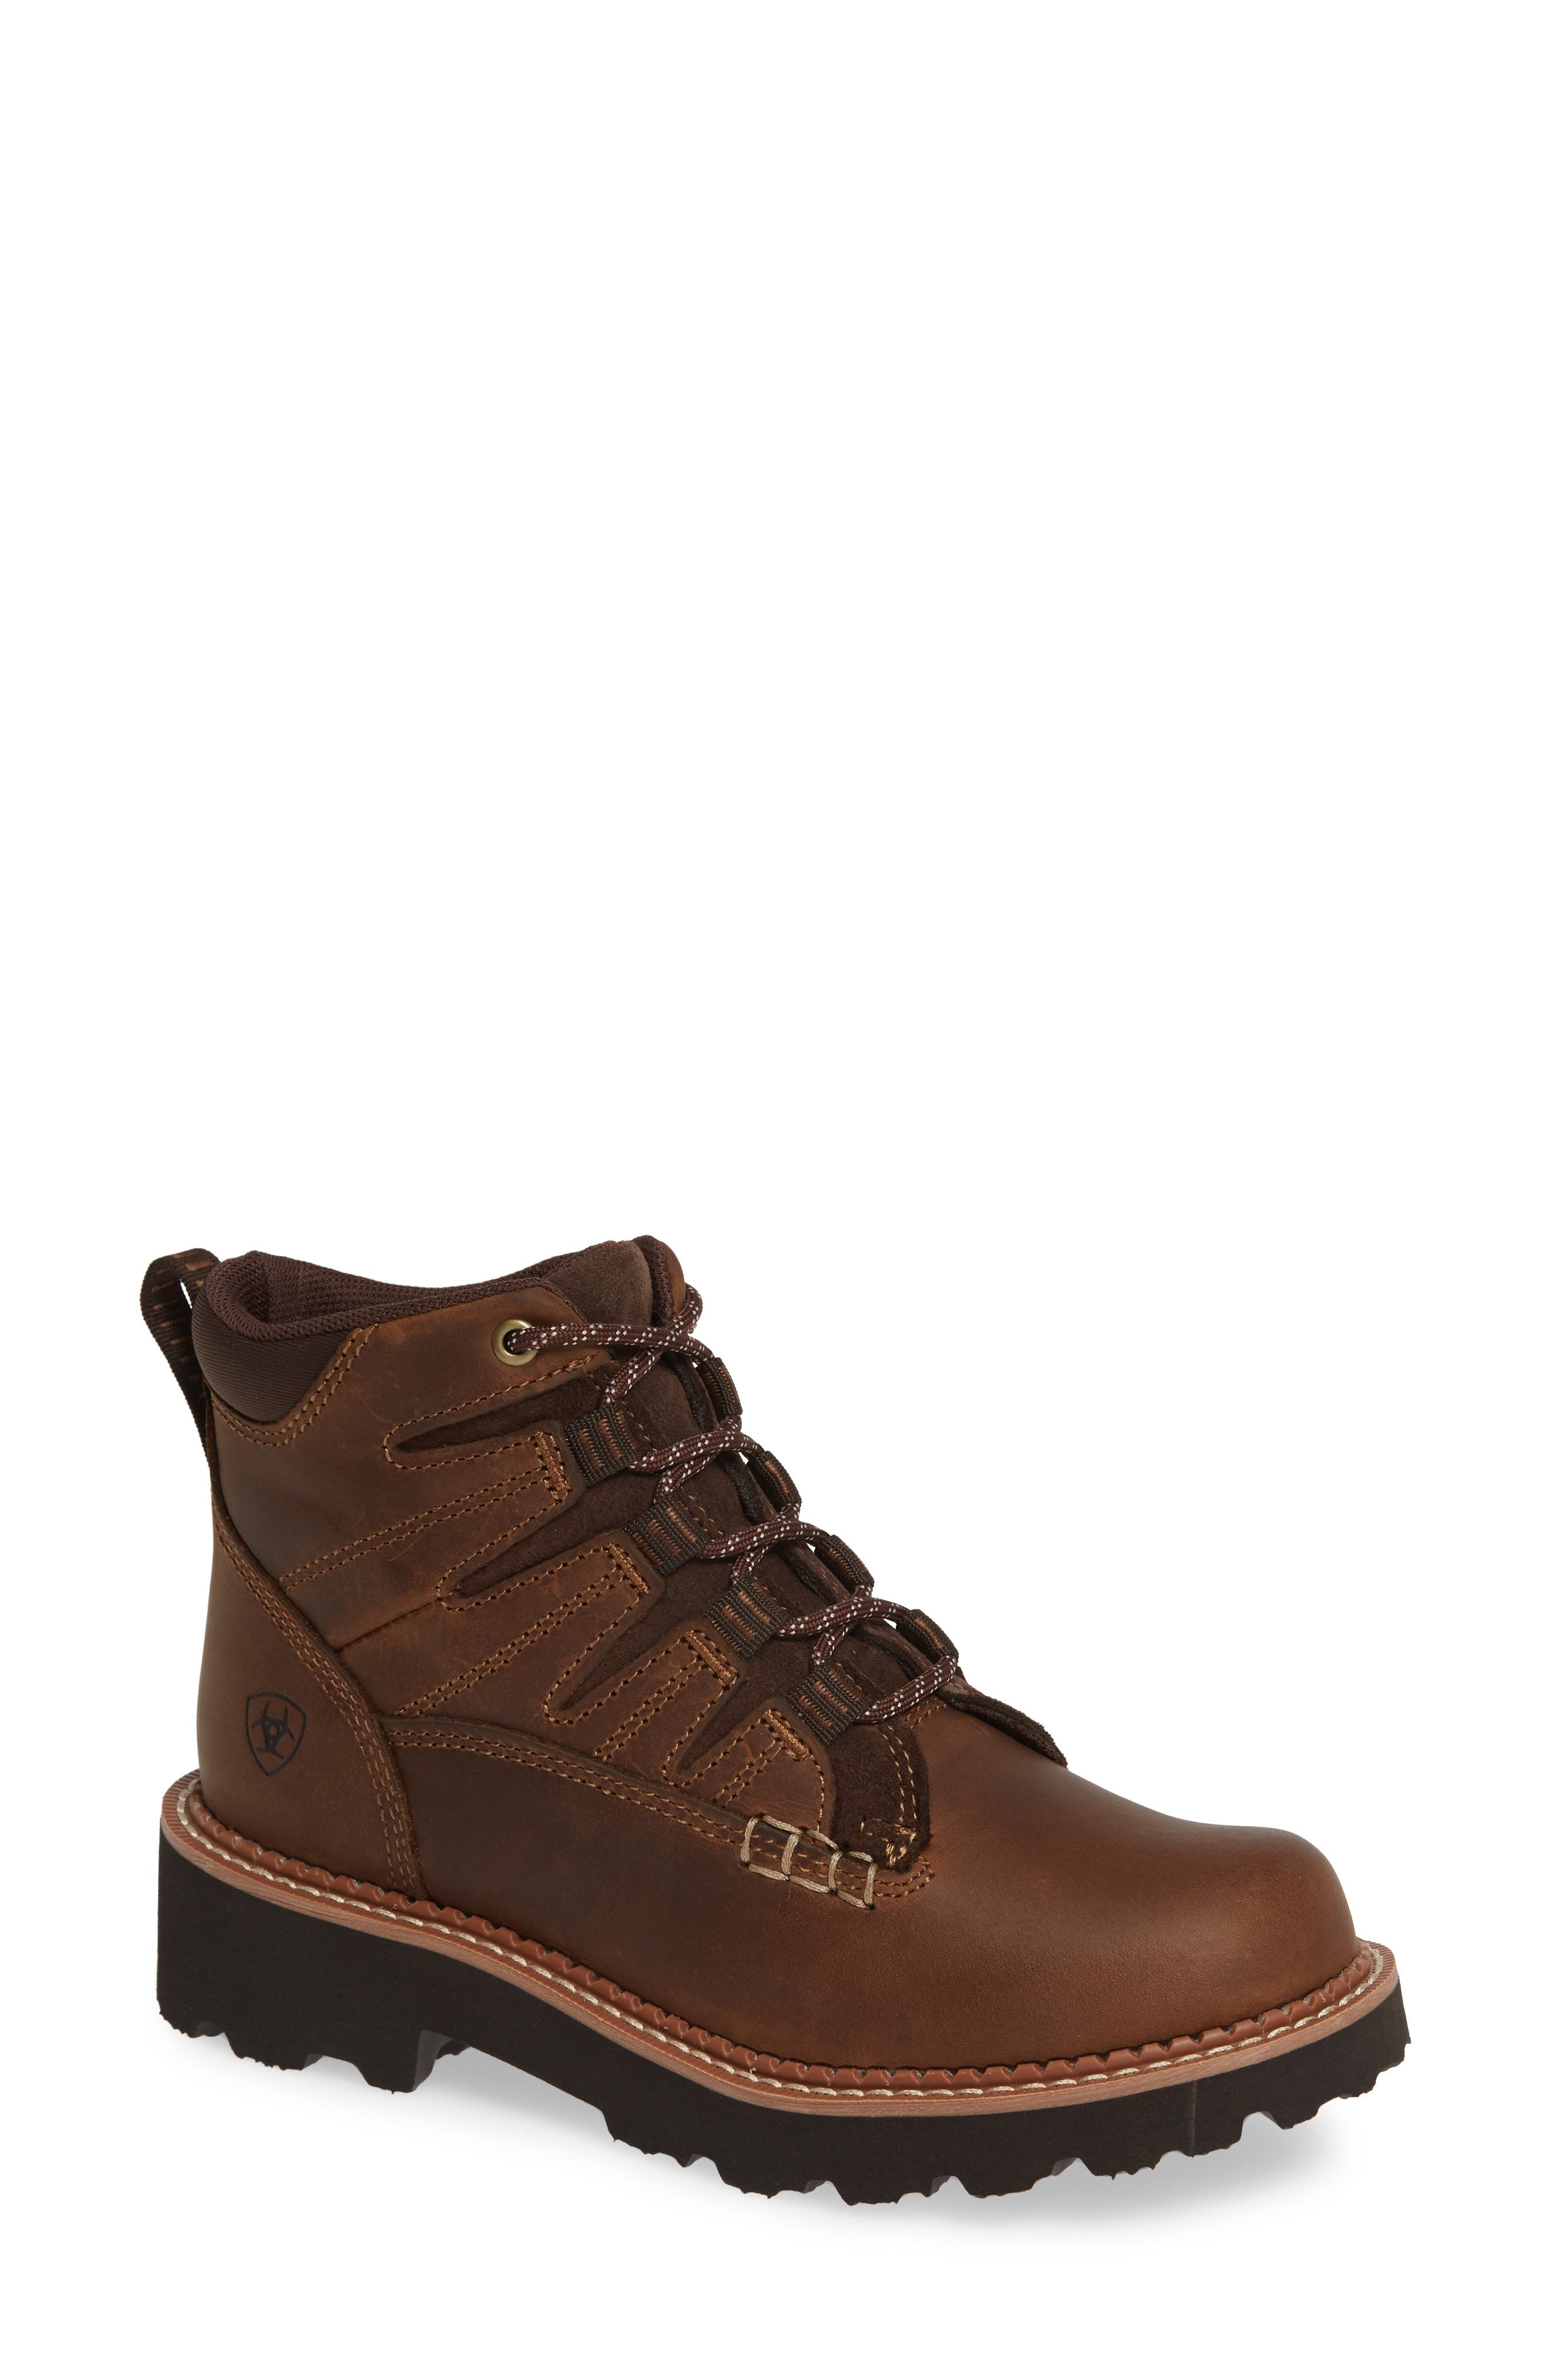 Ariat Canyon Ii Bootie W - Brown